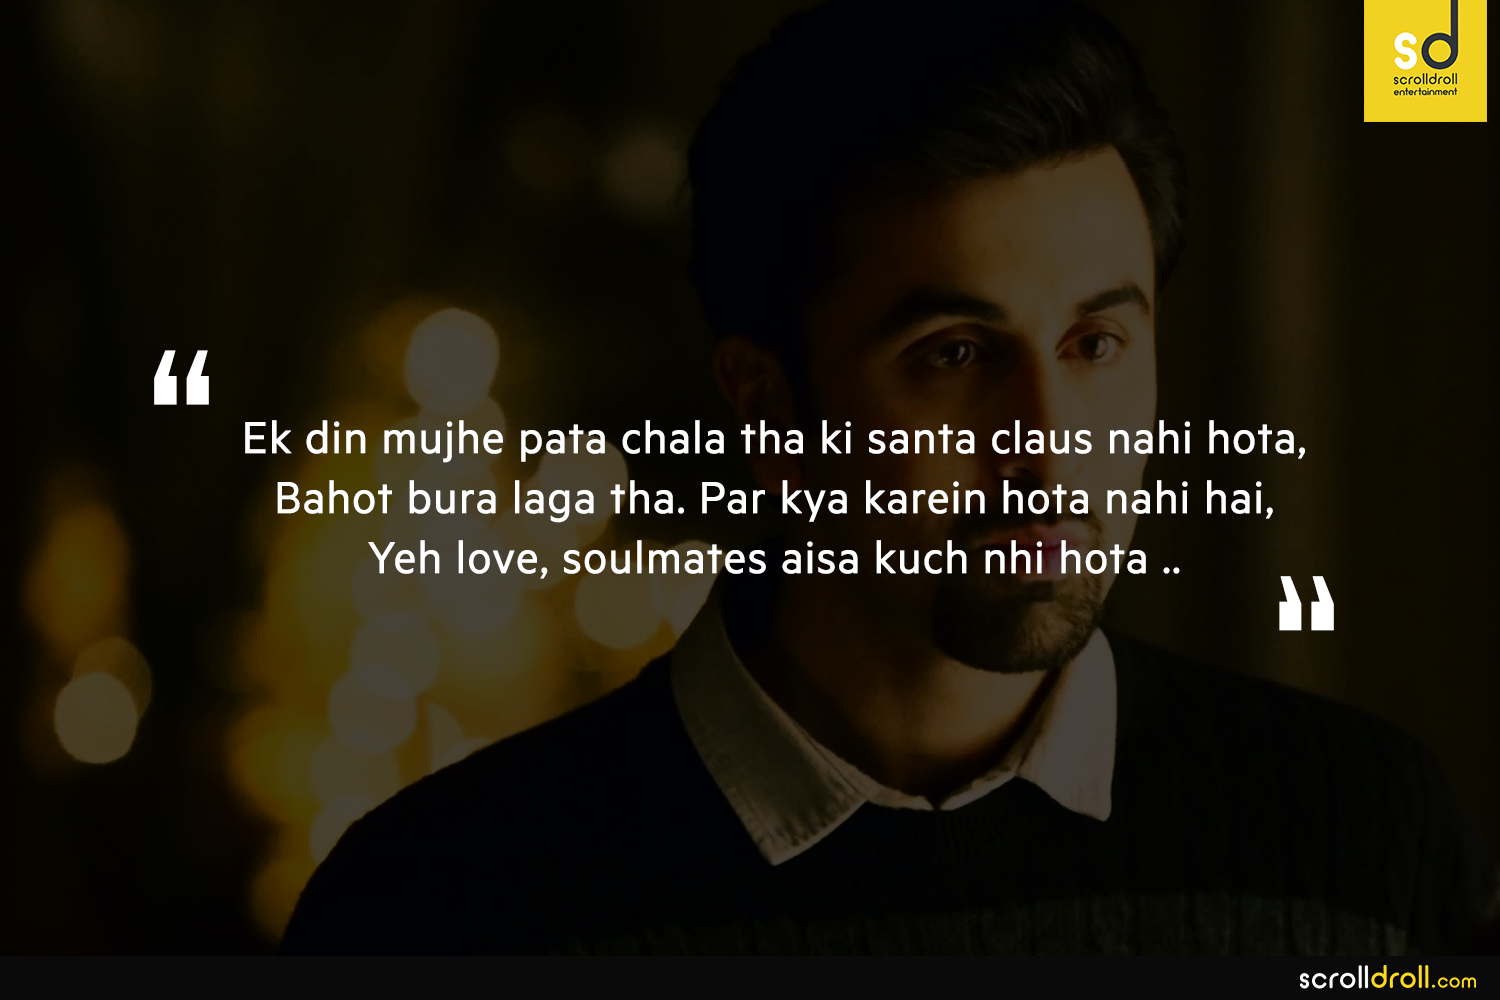 Free Thought Quotes From Movies: 7 Most Thought Provoking Dialogues From The Movie Tamasha